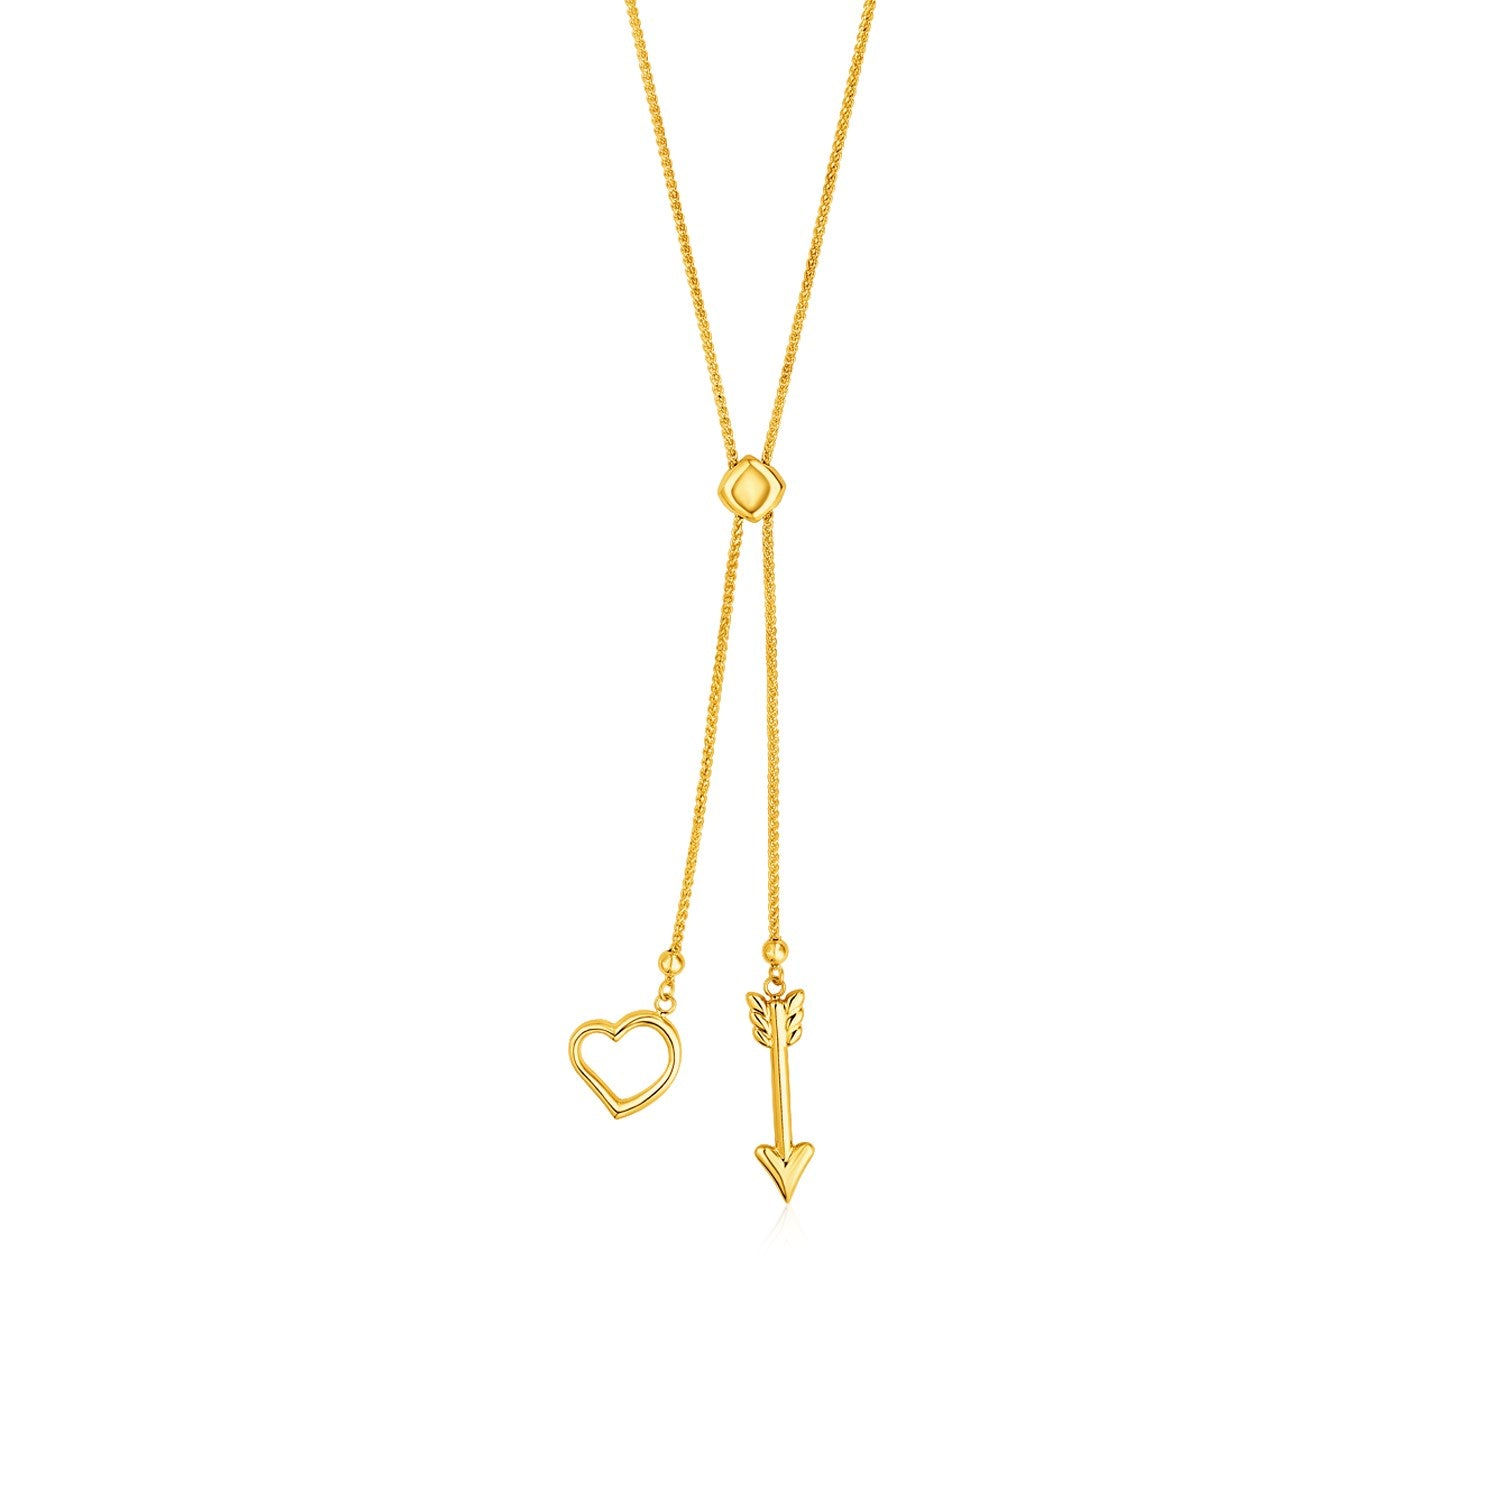 Adjustable Lariat Necklace with Arrow and Heart Pendants in 14K Yellow Gold